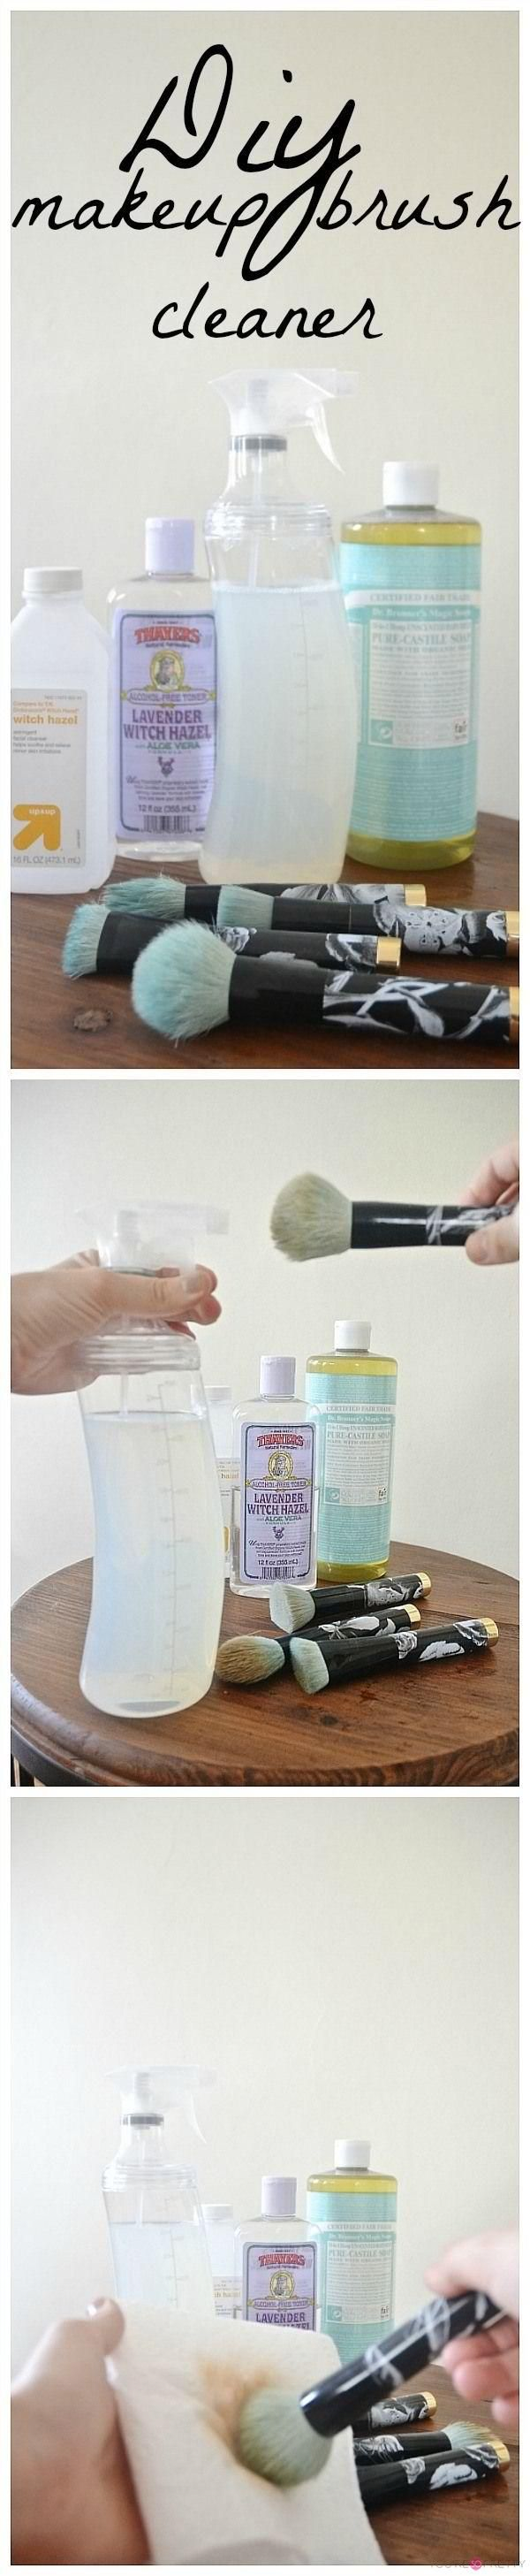 DIY Makeup Brush Cleaner Spray   How to clean makeup brushes and how to wash makeup brushes at You're So Pretty   https://youresopretty.com    More here.......            https://www.youtube.com/watch?v=tx5lVyWzkrg       #makeup #makeupartist #makeupbrushes #eye